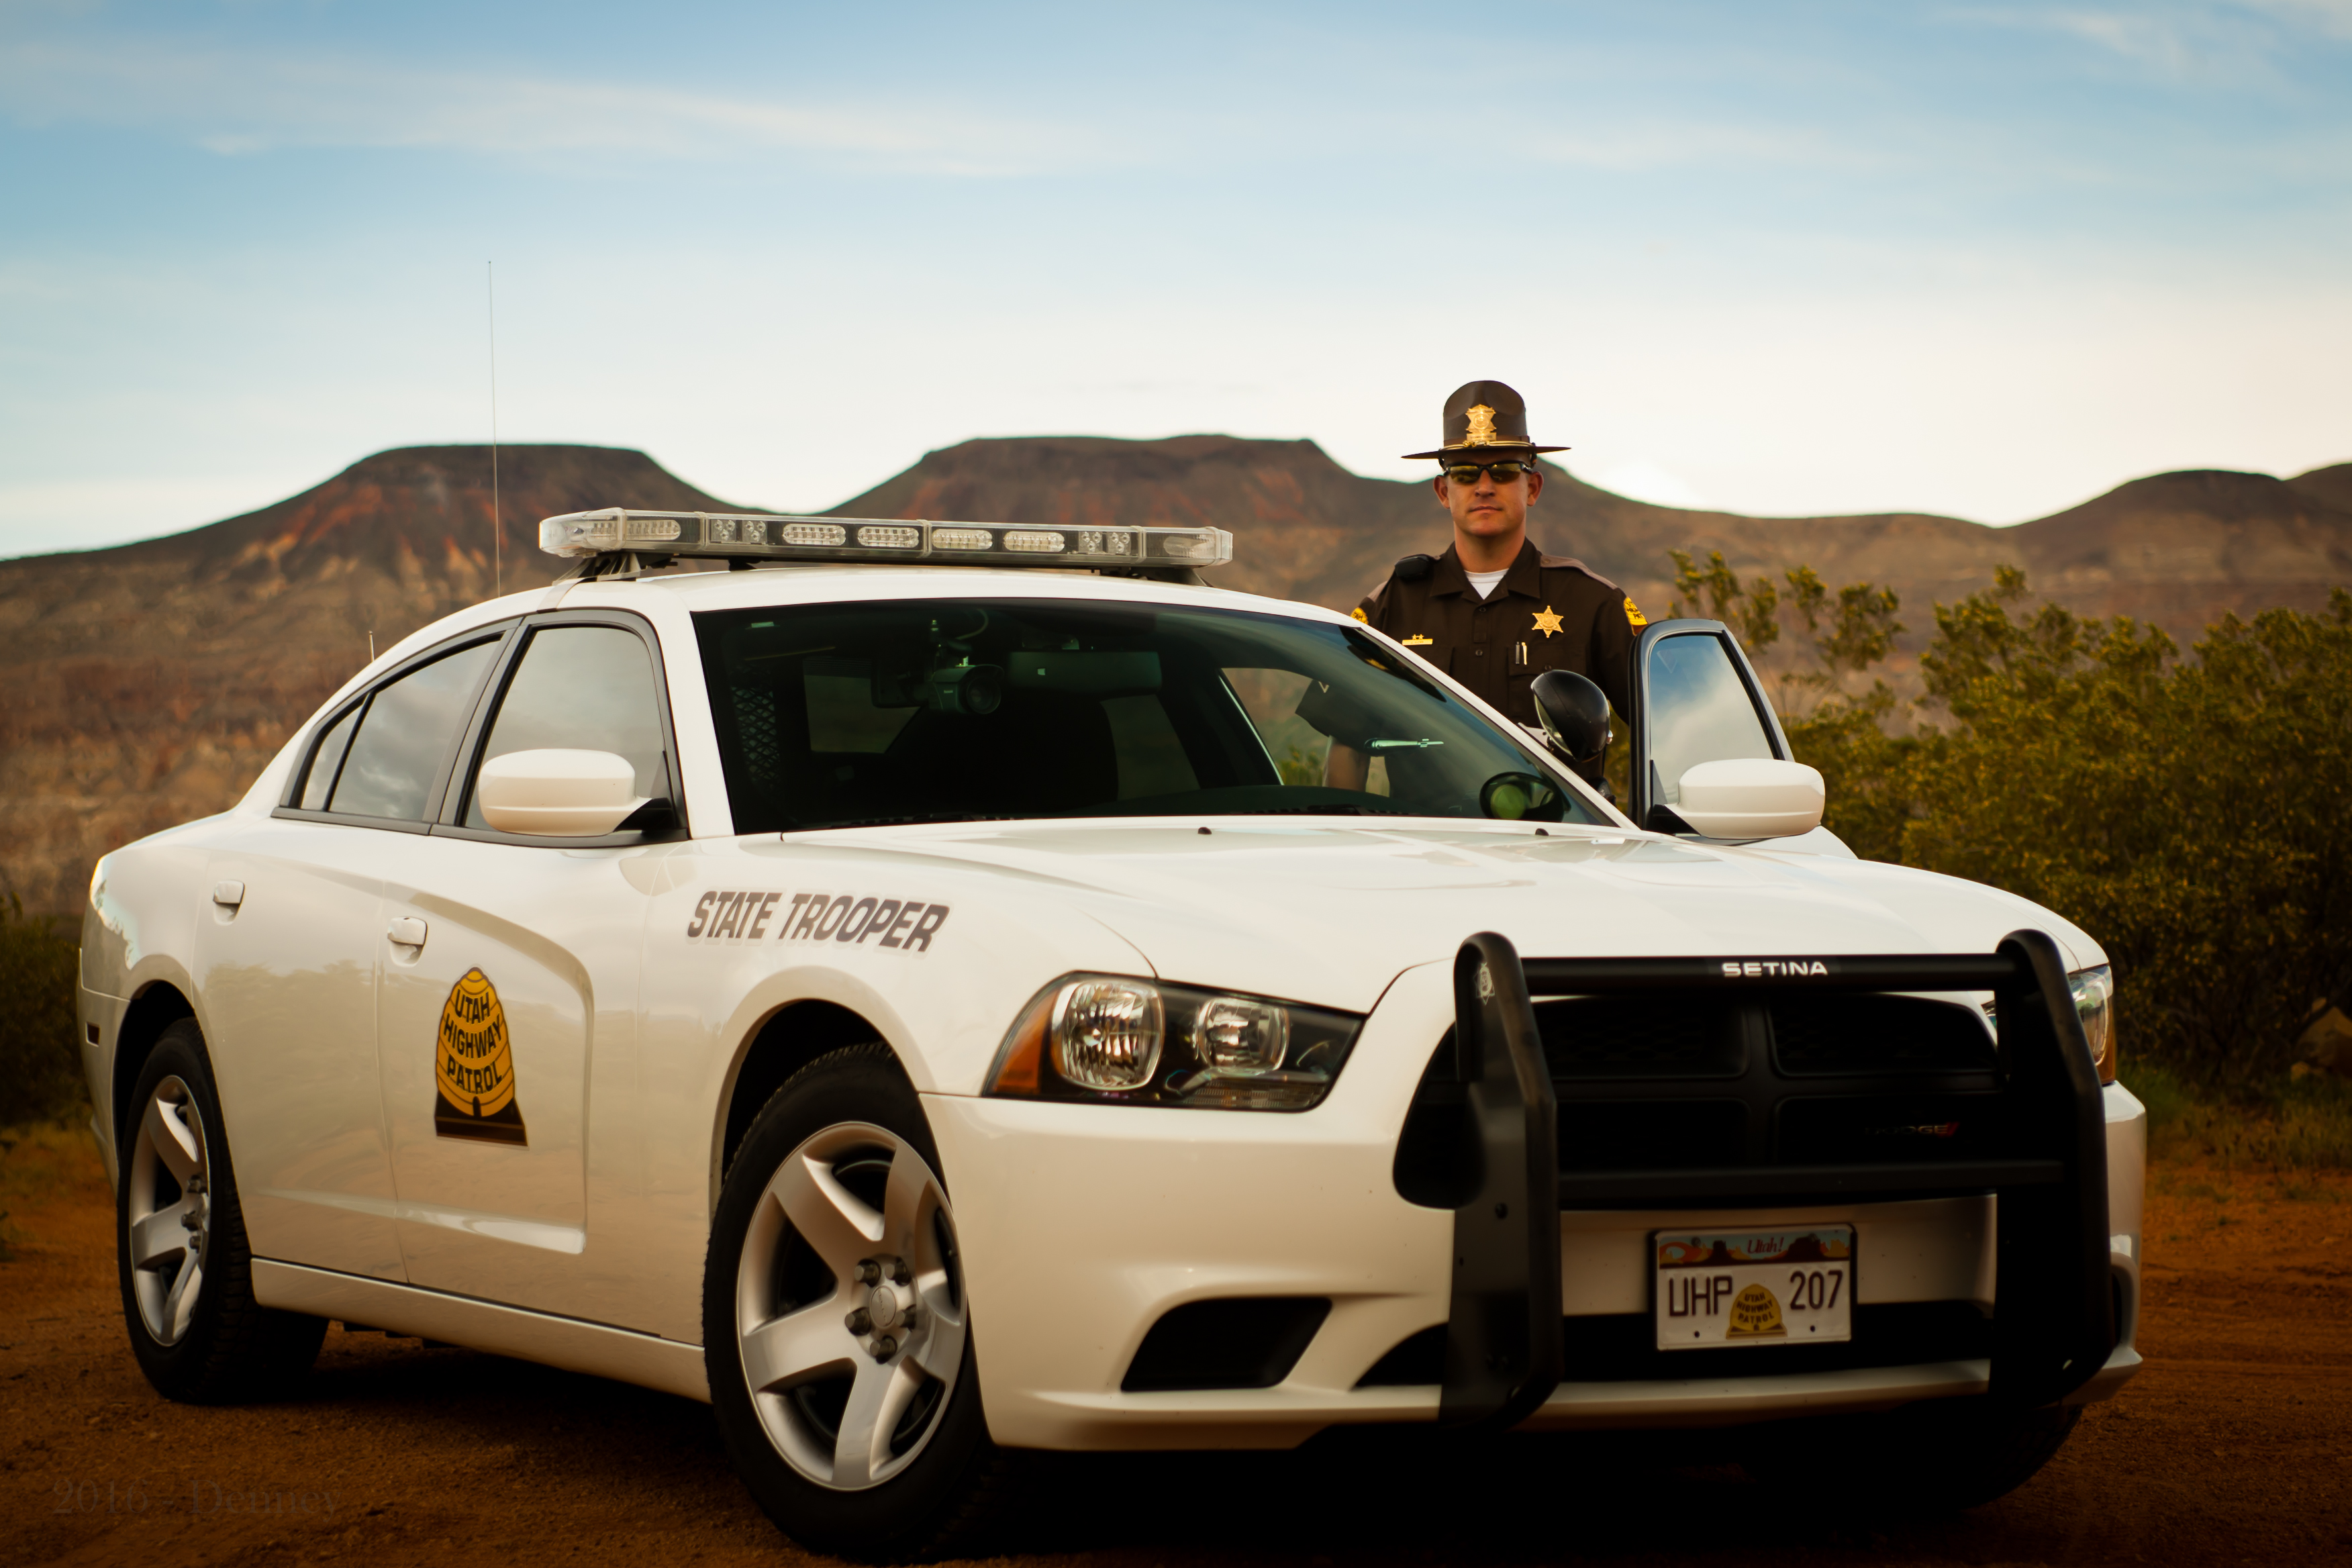 UHP troopers provide professional police services throughout the state.